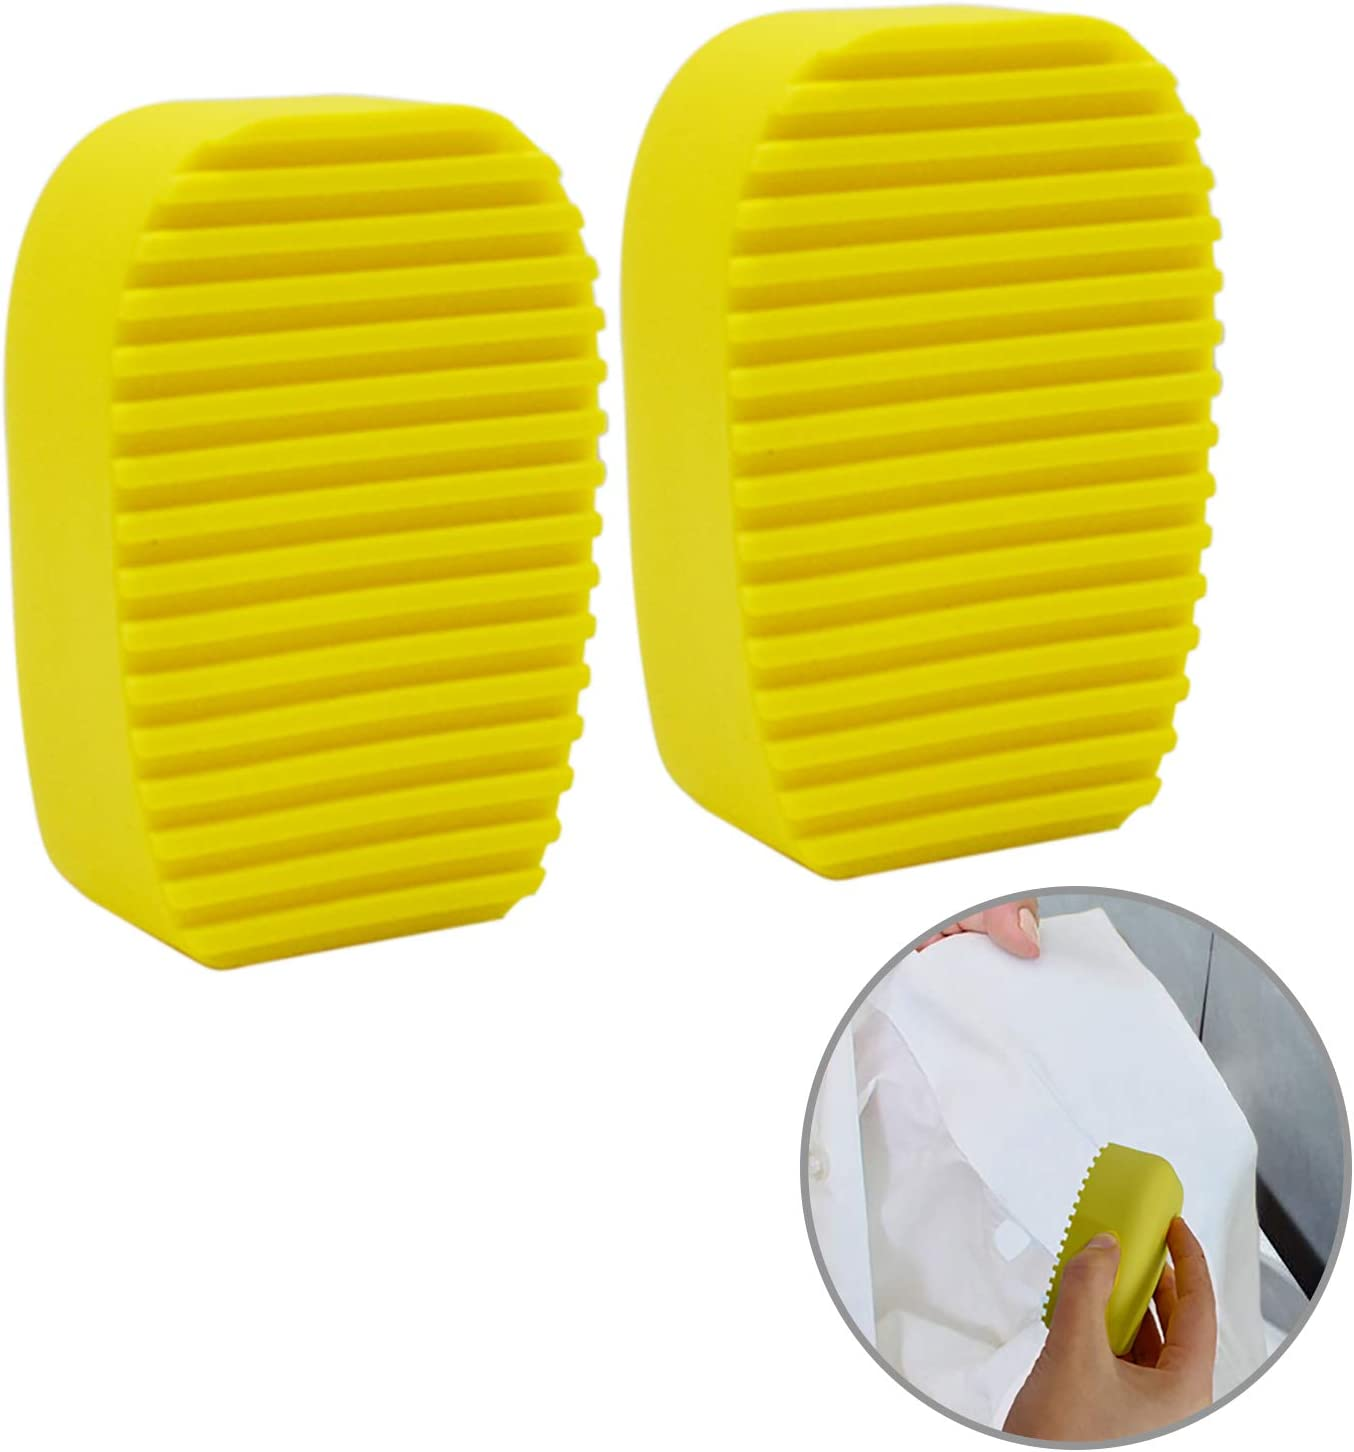 LiXiongBao 2 Pack Silicone Washboard Creative Mini Antiskid Handheld Laundry Brush Scruber Washboard Candy Color Yellow Wash Clothes Collar Furniture Stain Removal